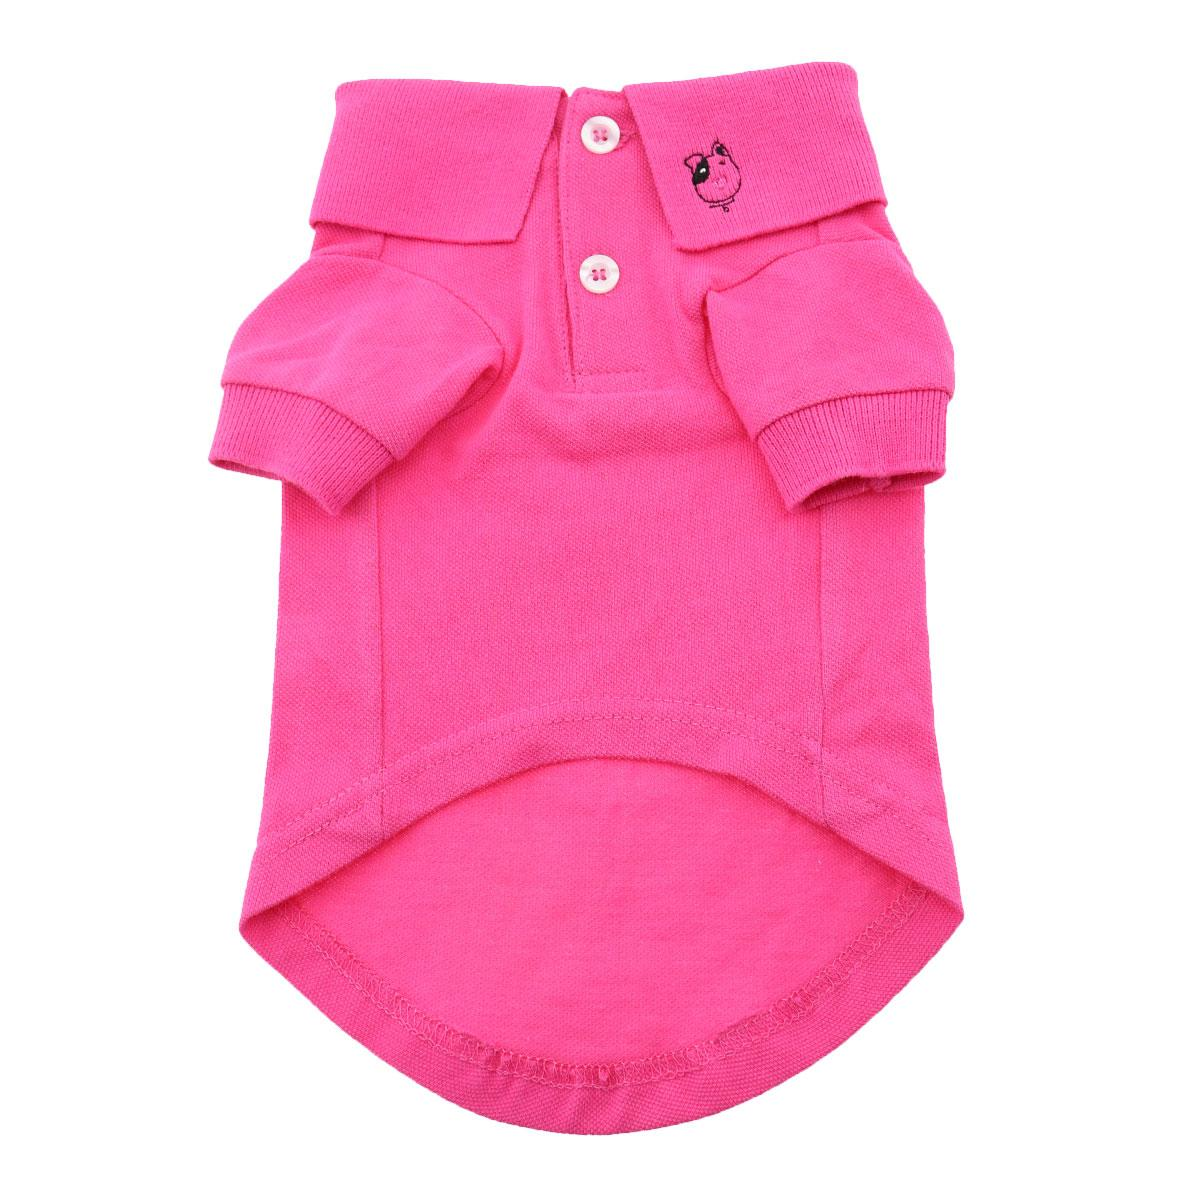 Solid Dog Polo by Doggie Design - Raspberry Sorbet